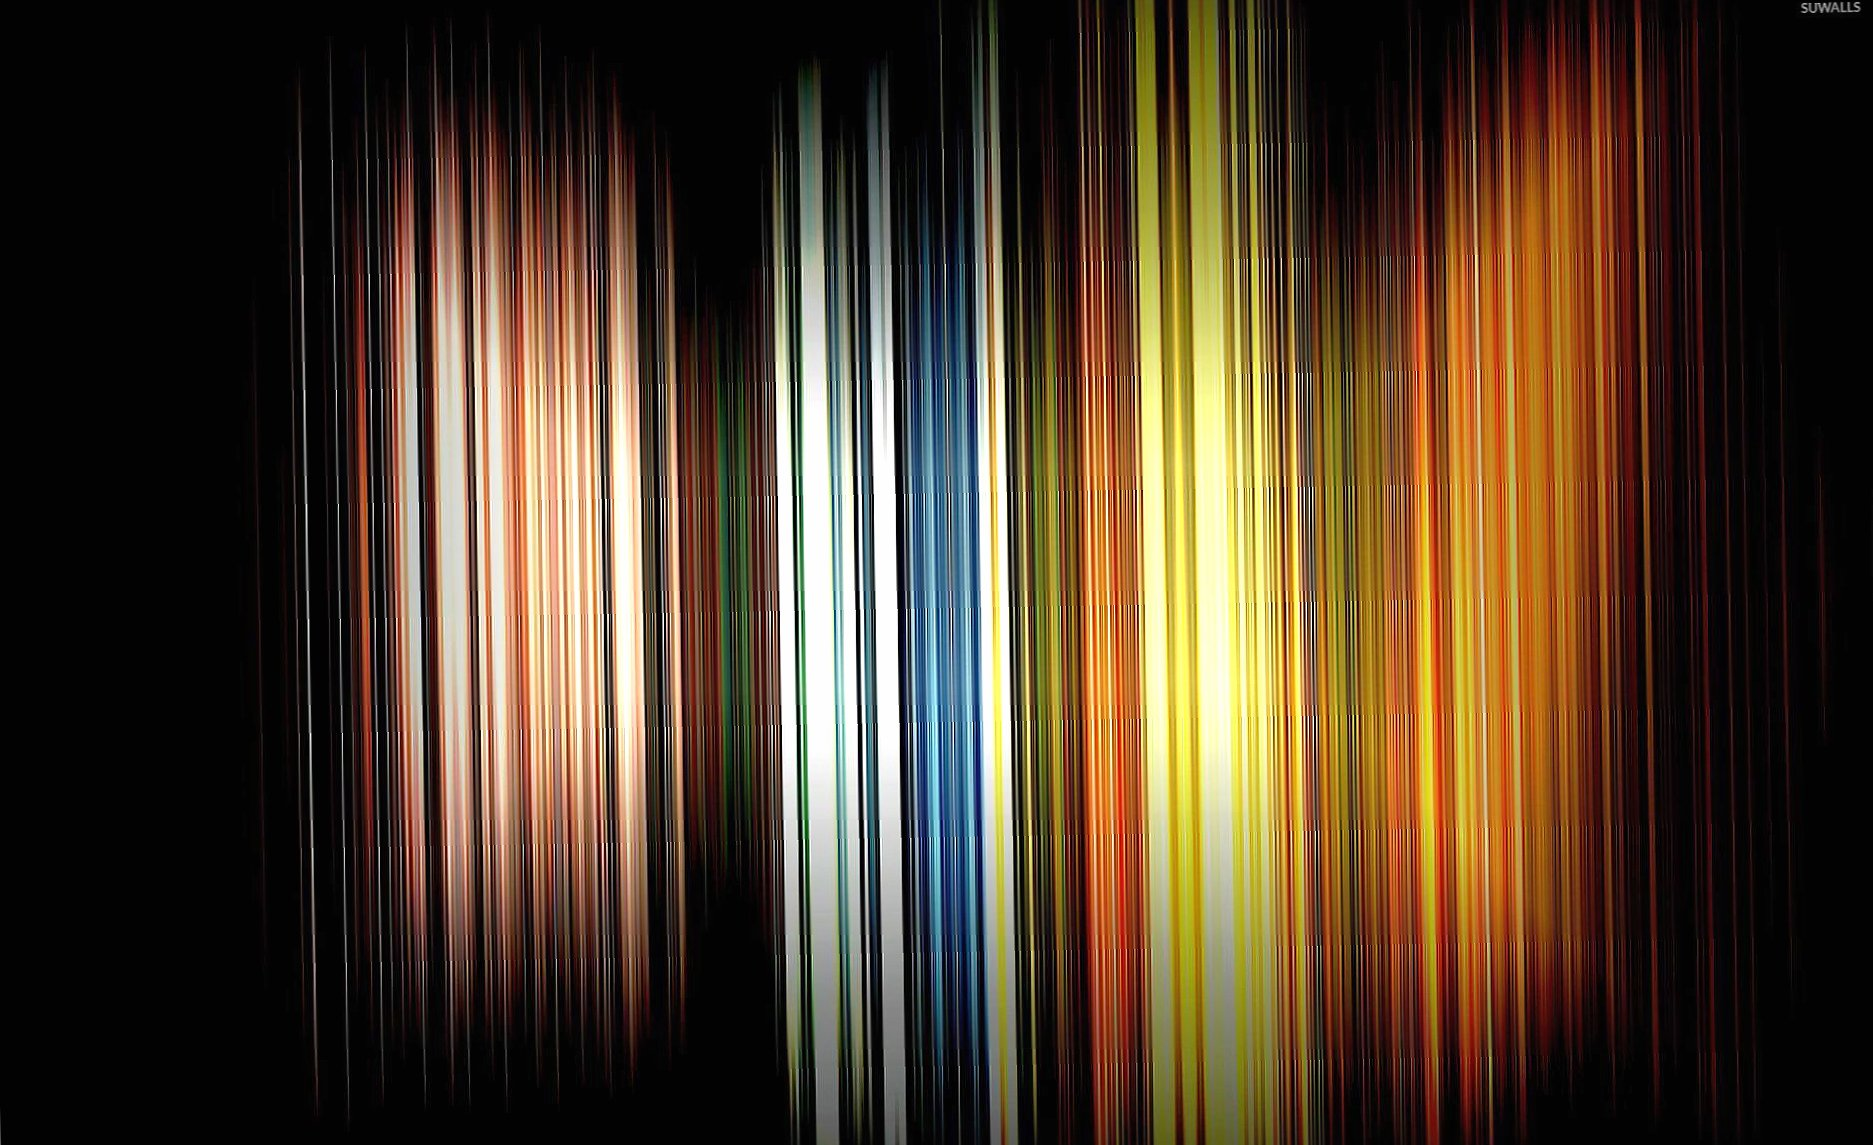 Narrow colorful stripes wallpapers HD quality